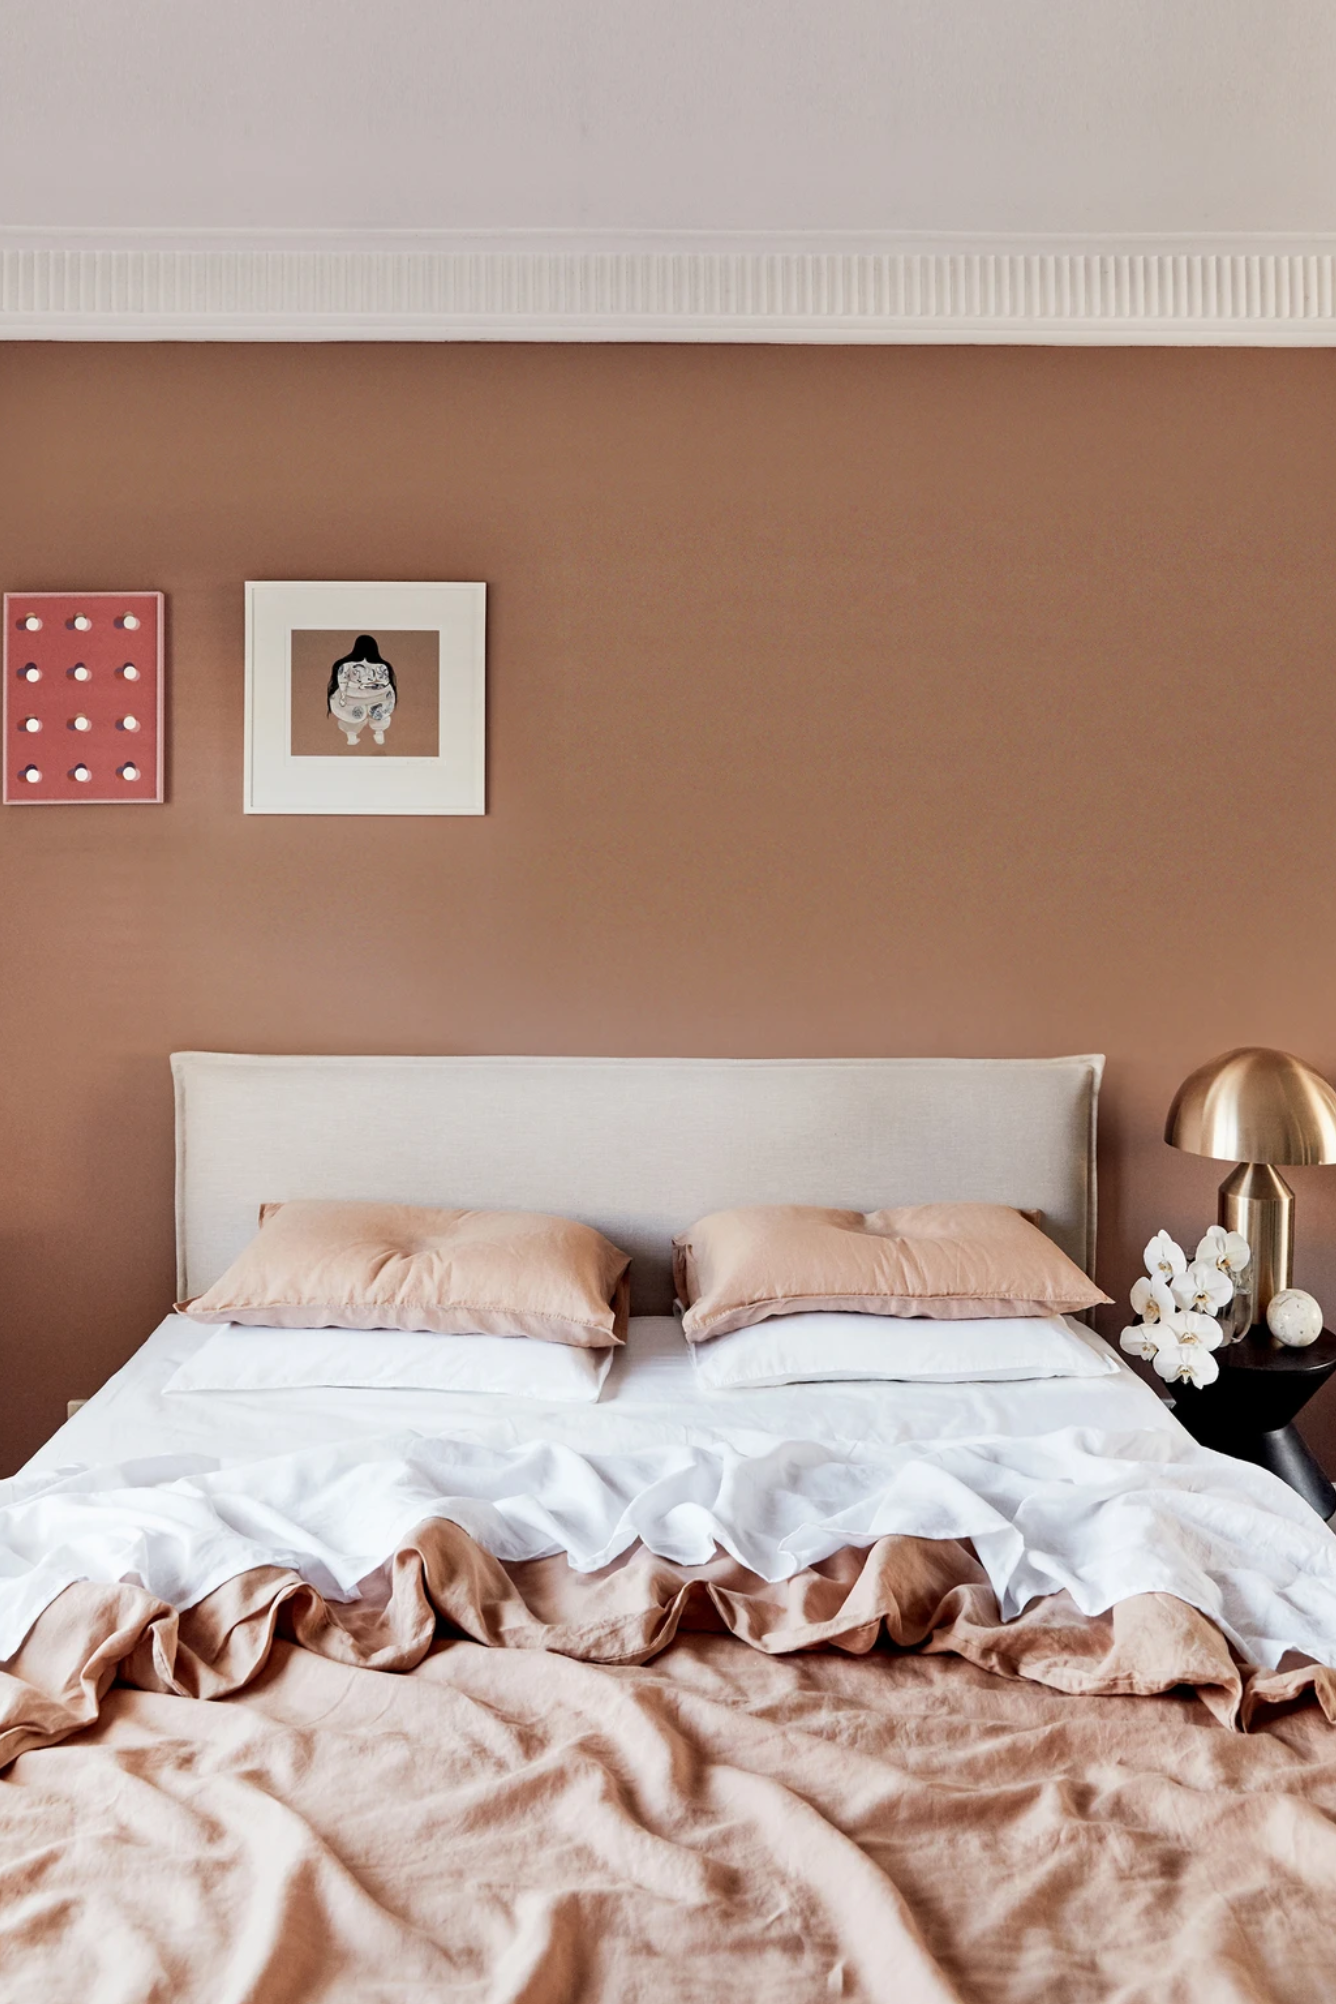 EARTH TONES: Terracotta Bedroom Ideas and Paint Colors - Image via Bed Threads, Photo by @alanalandsberryphoto feat. paint color 'Magnitude' by Dulux